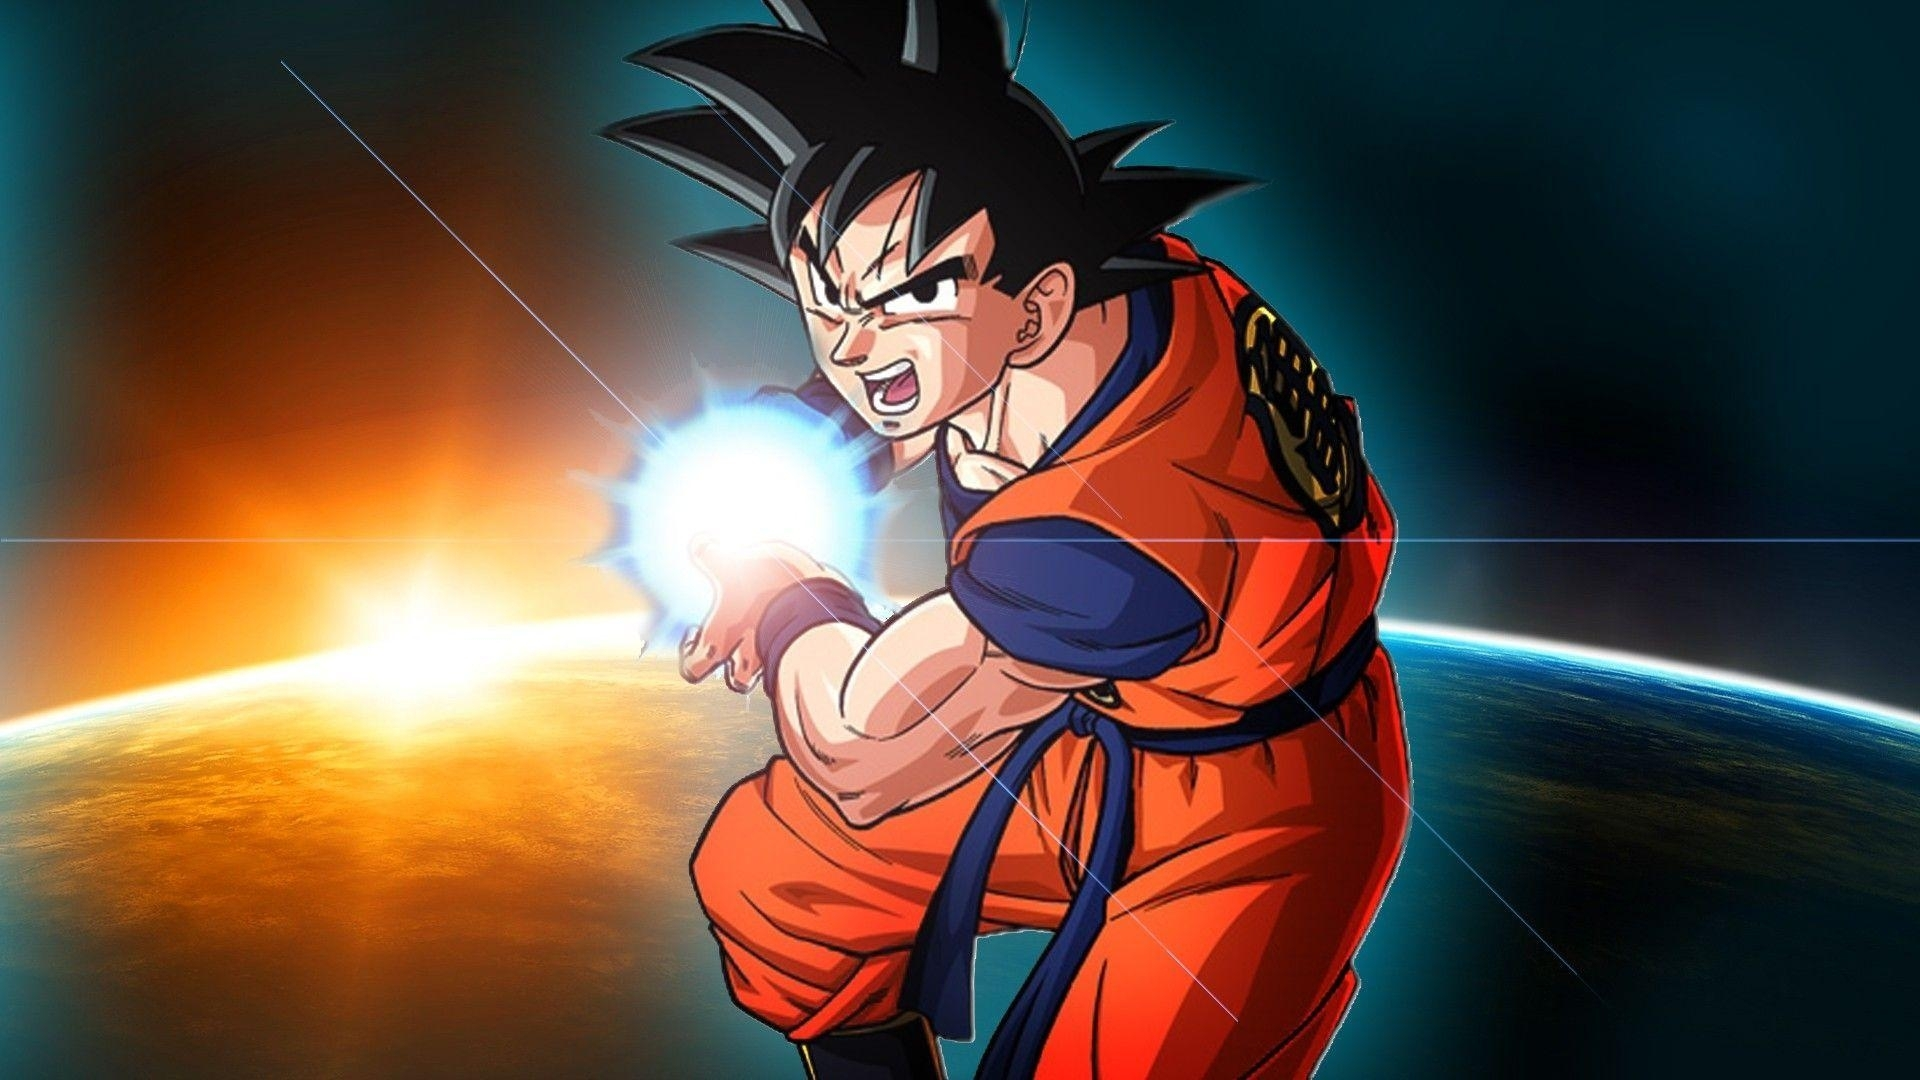 dragon ball z goku wallpapers - wallpaper cave